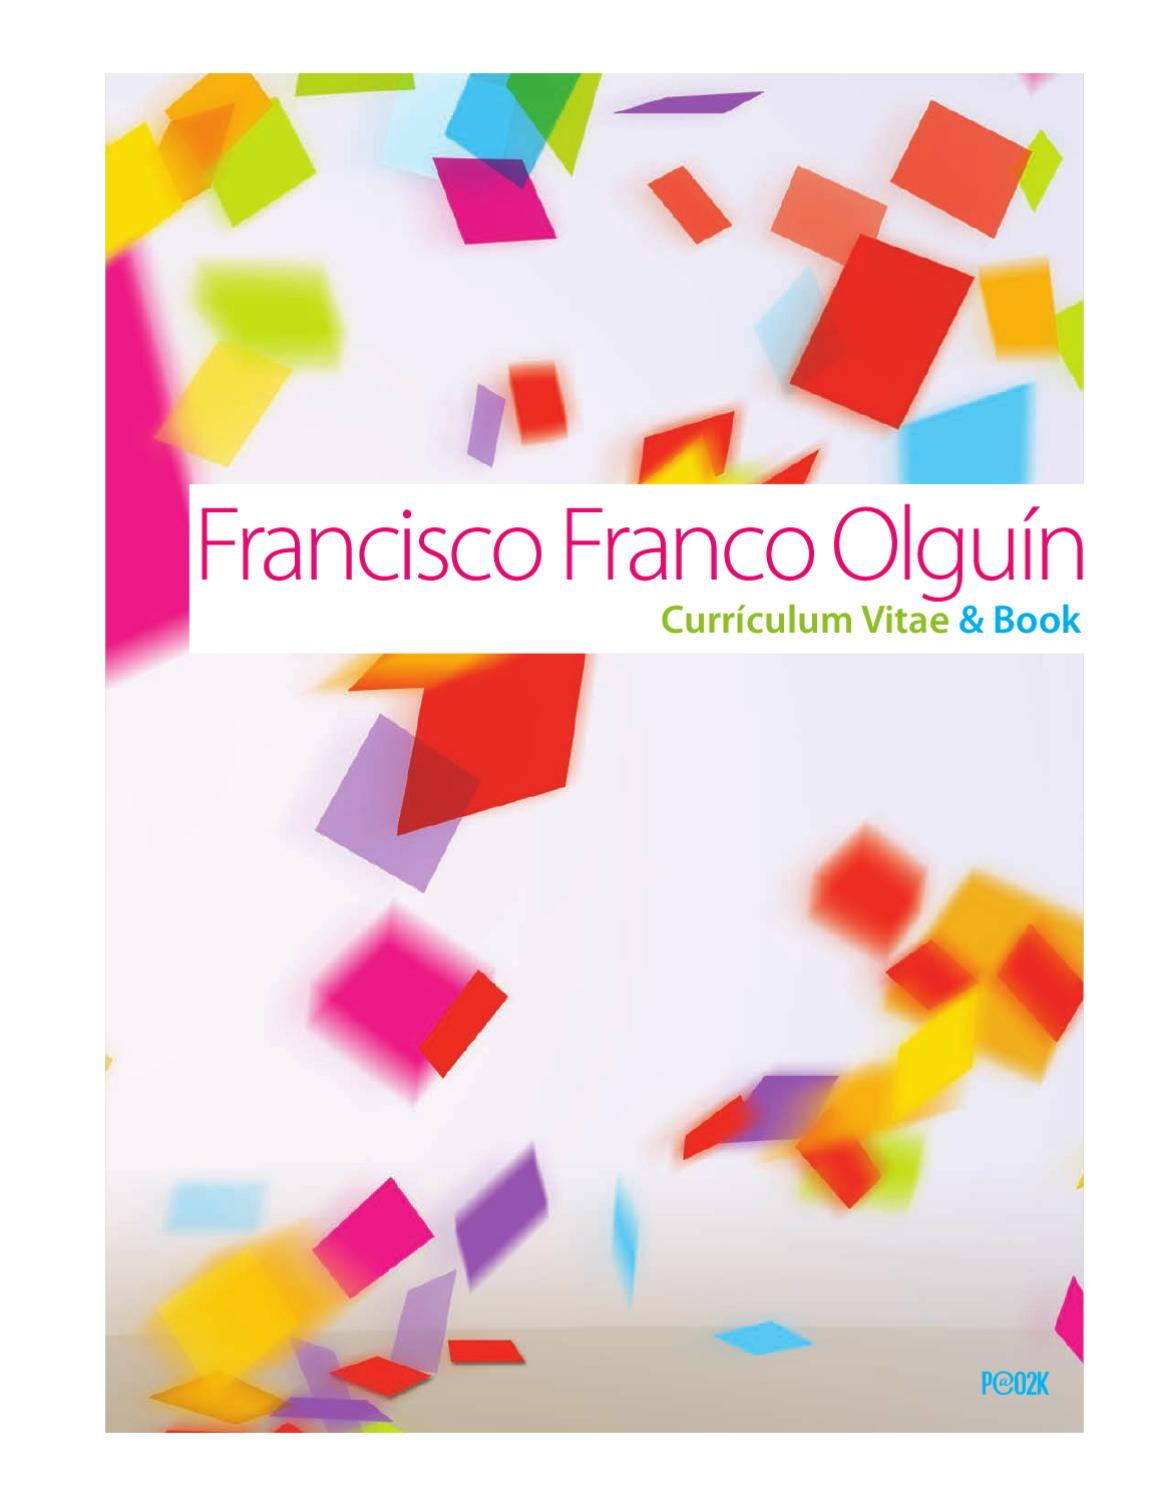 Resume & Book by Francisco Franco Olguín - issuu